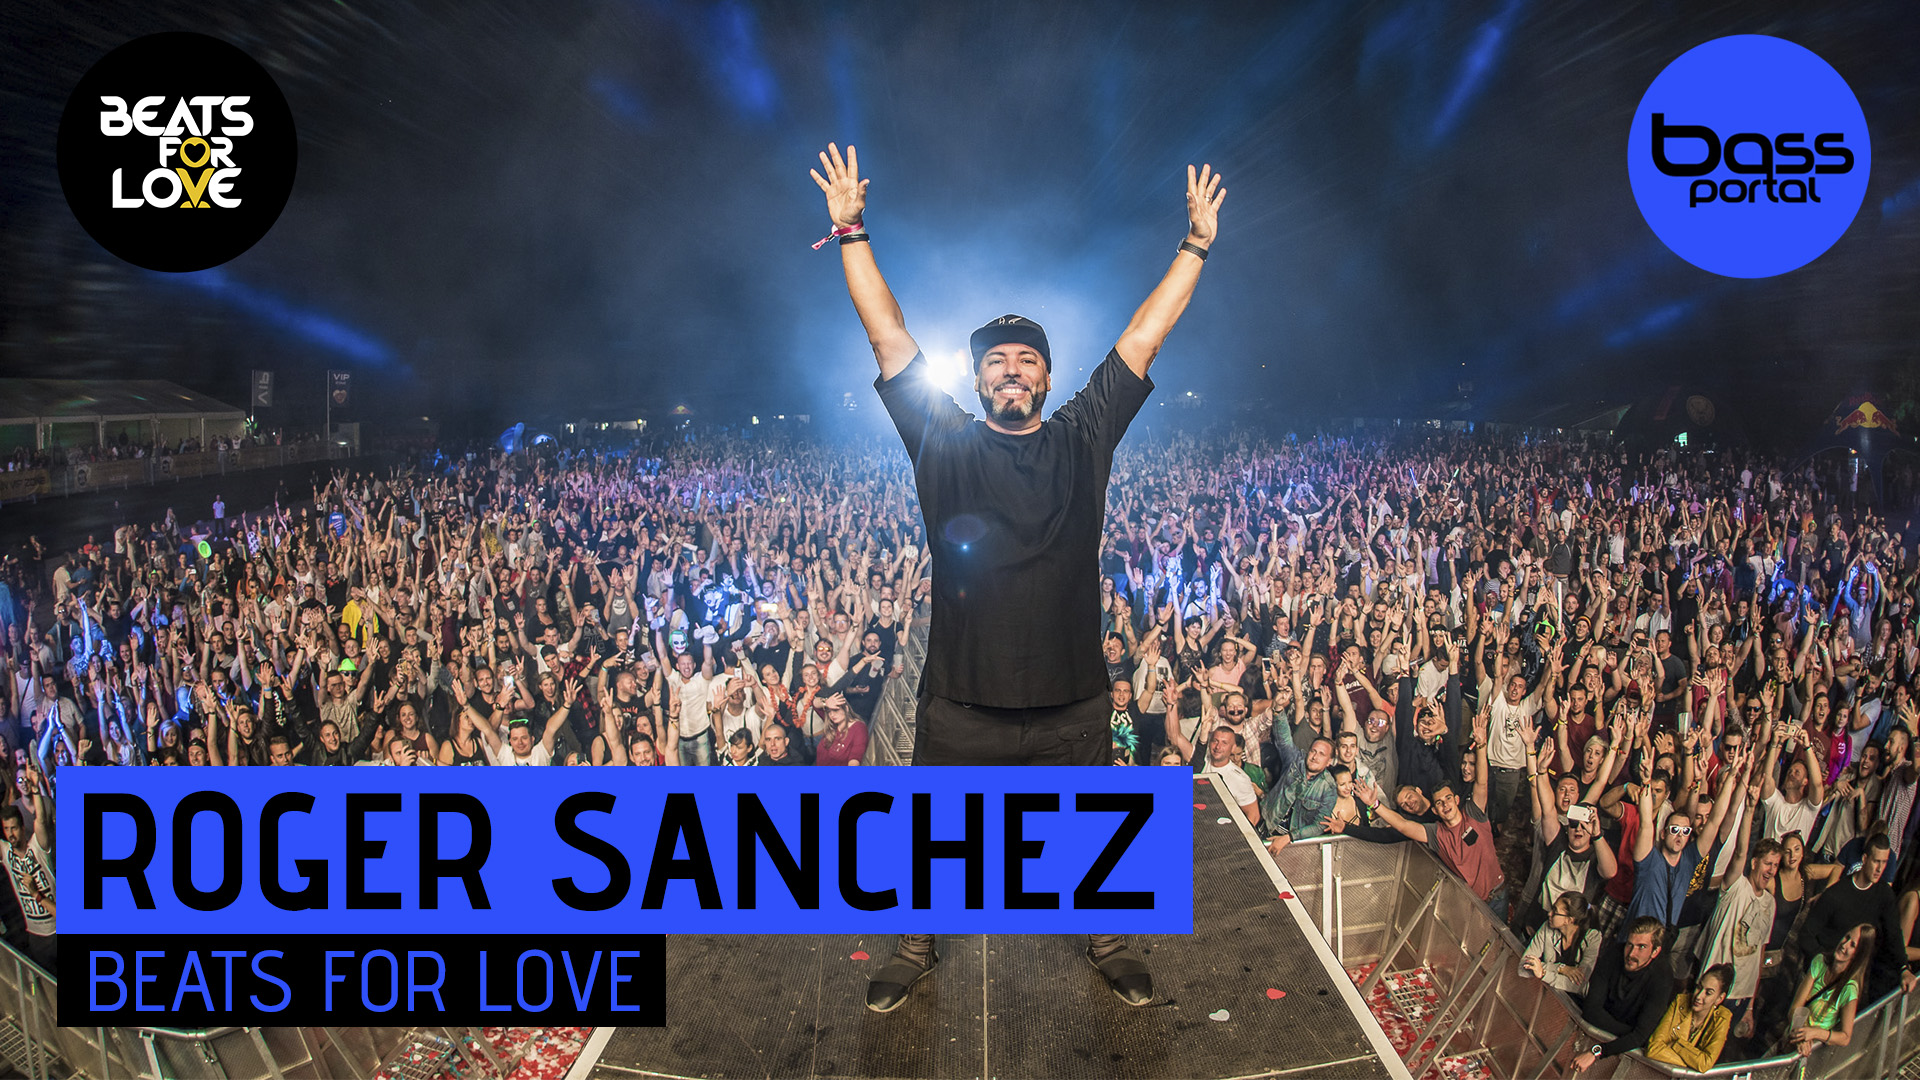 Roger Sanchez - Beats for Love